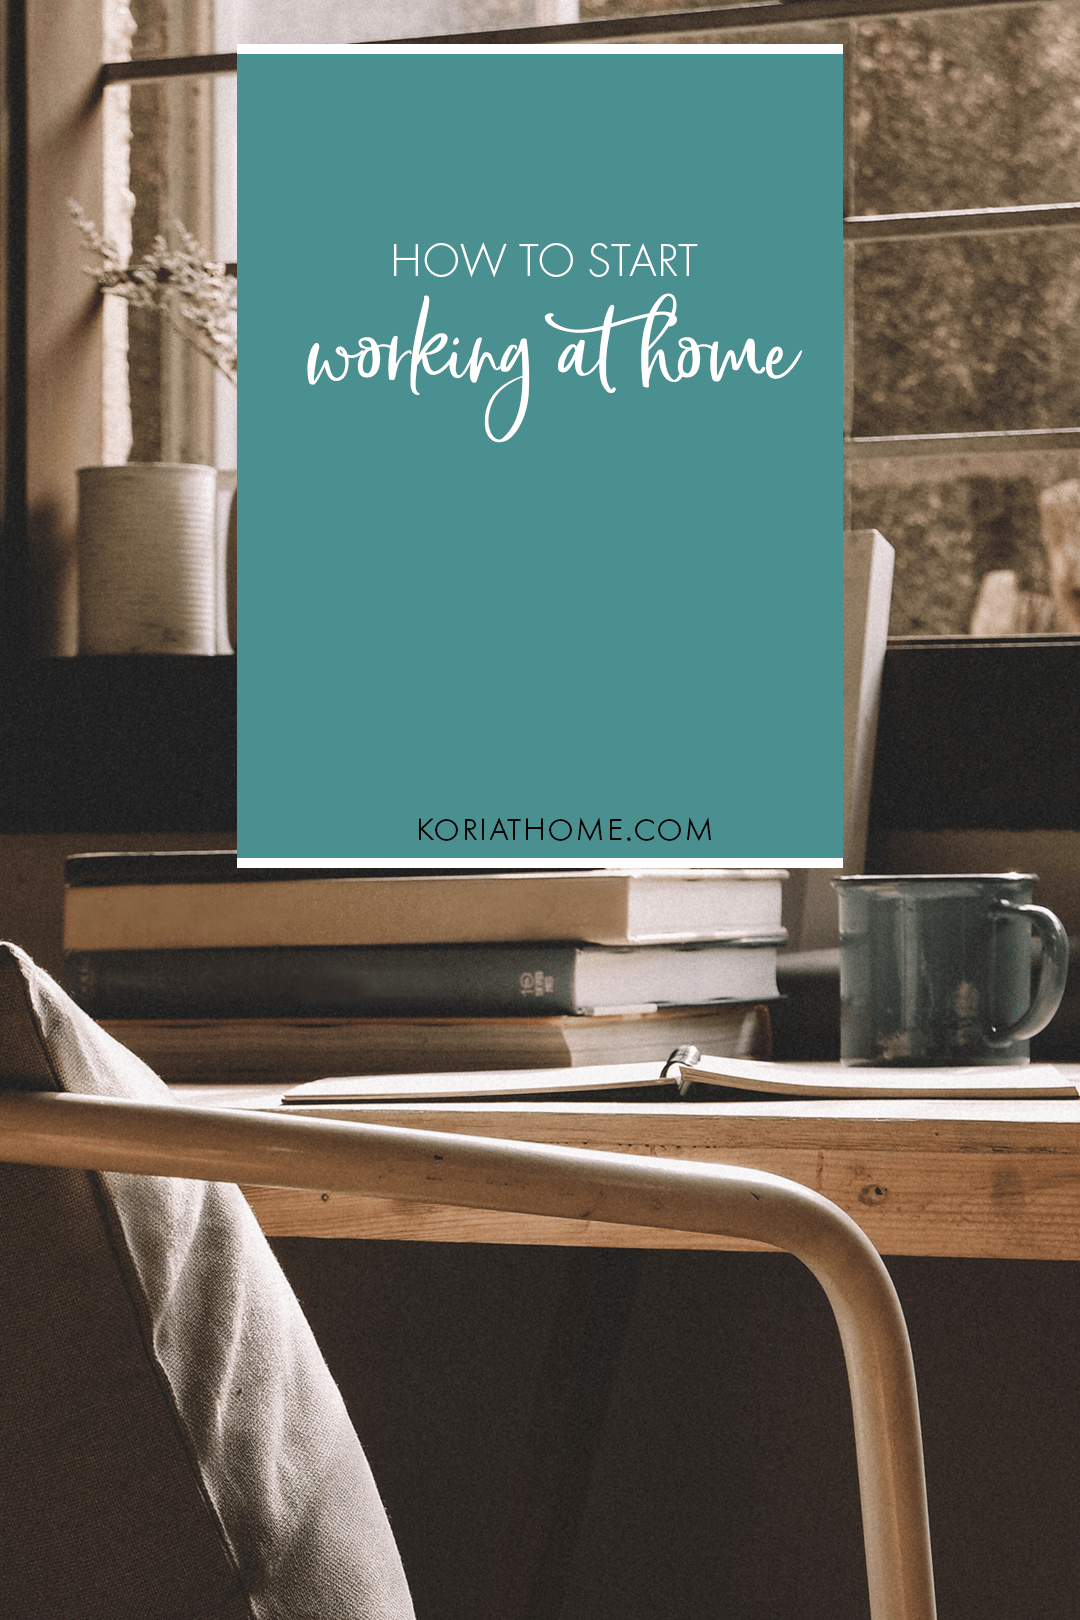 If you are looking into how to start working at home, be sure to take a look at this guide! I'm sharing my best tips and advice.